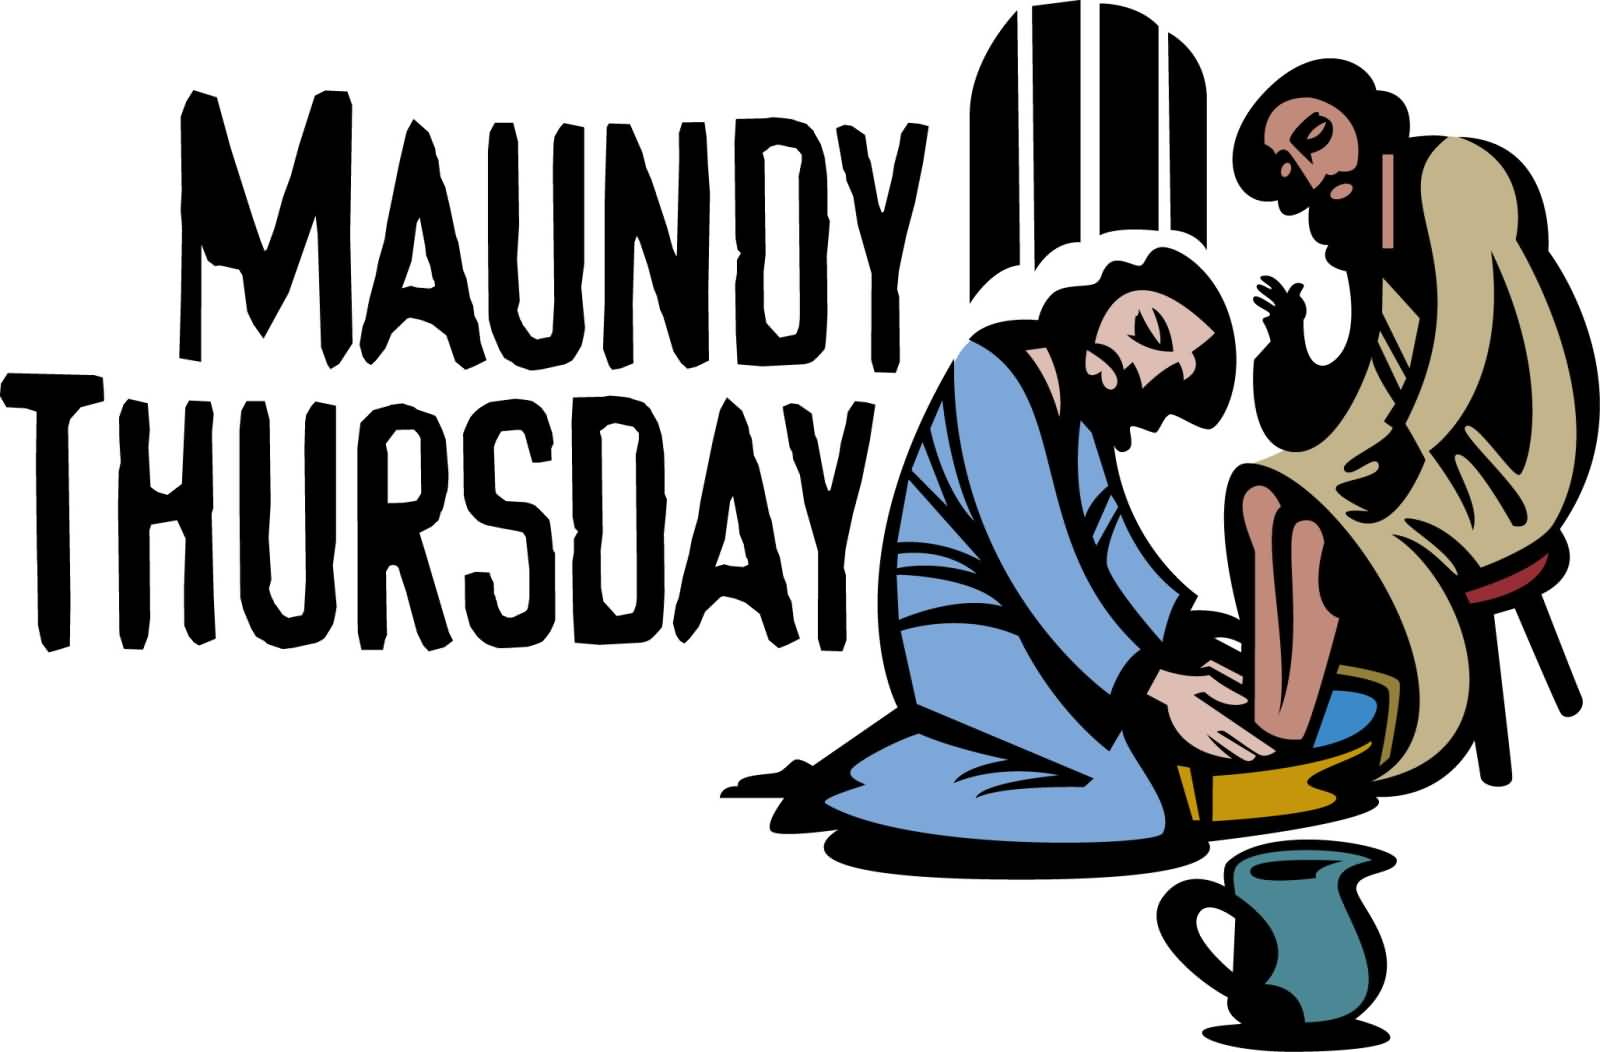 Maundy Thursday Clipart